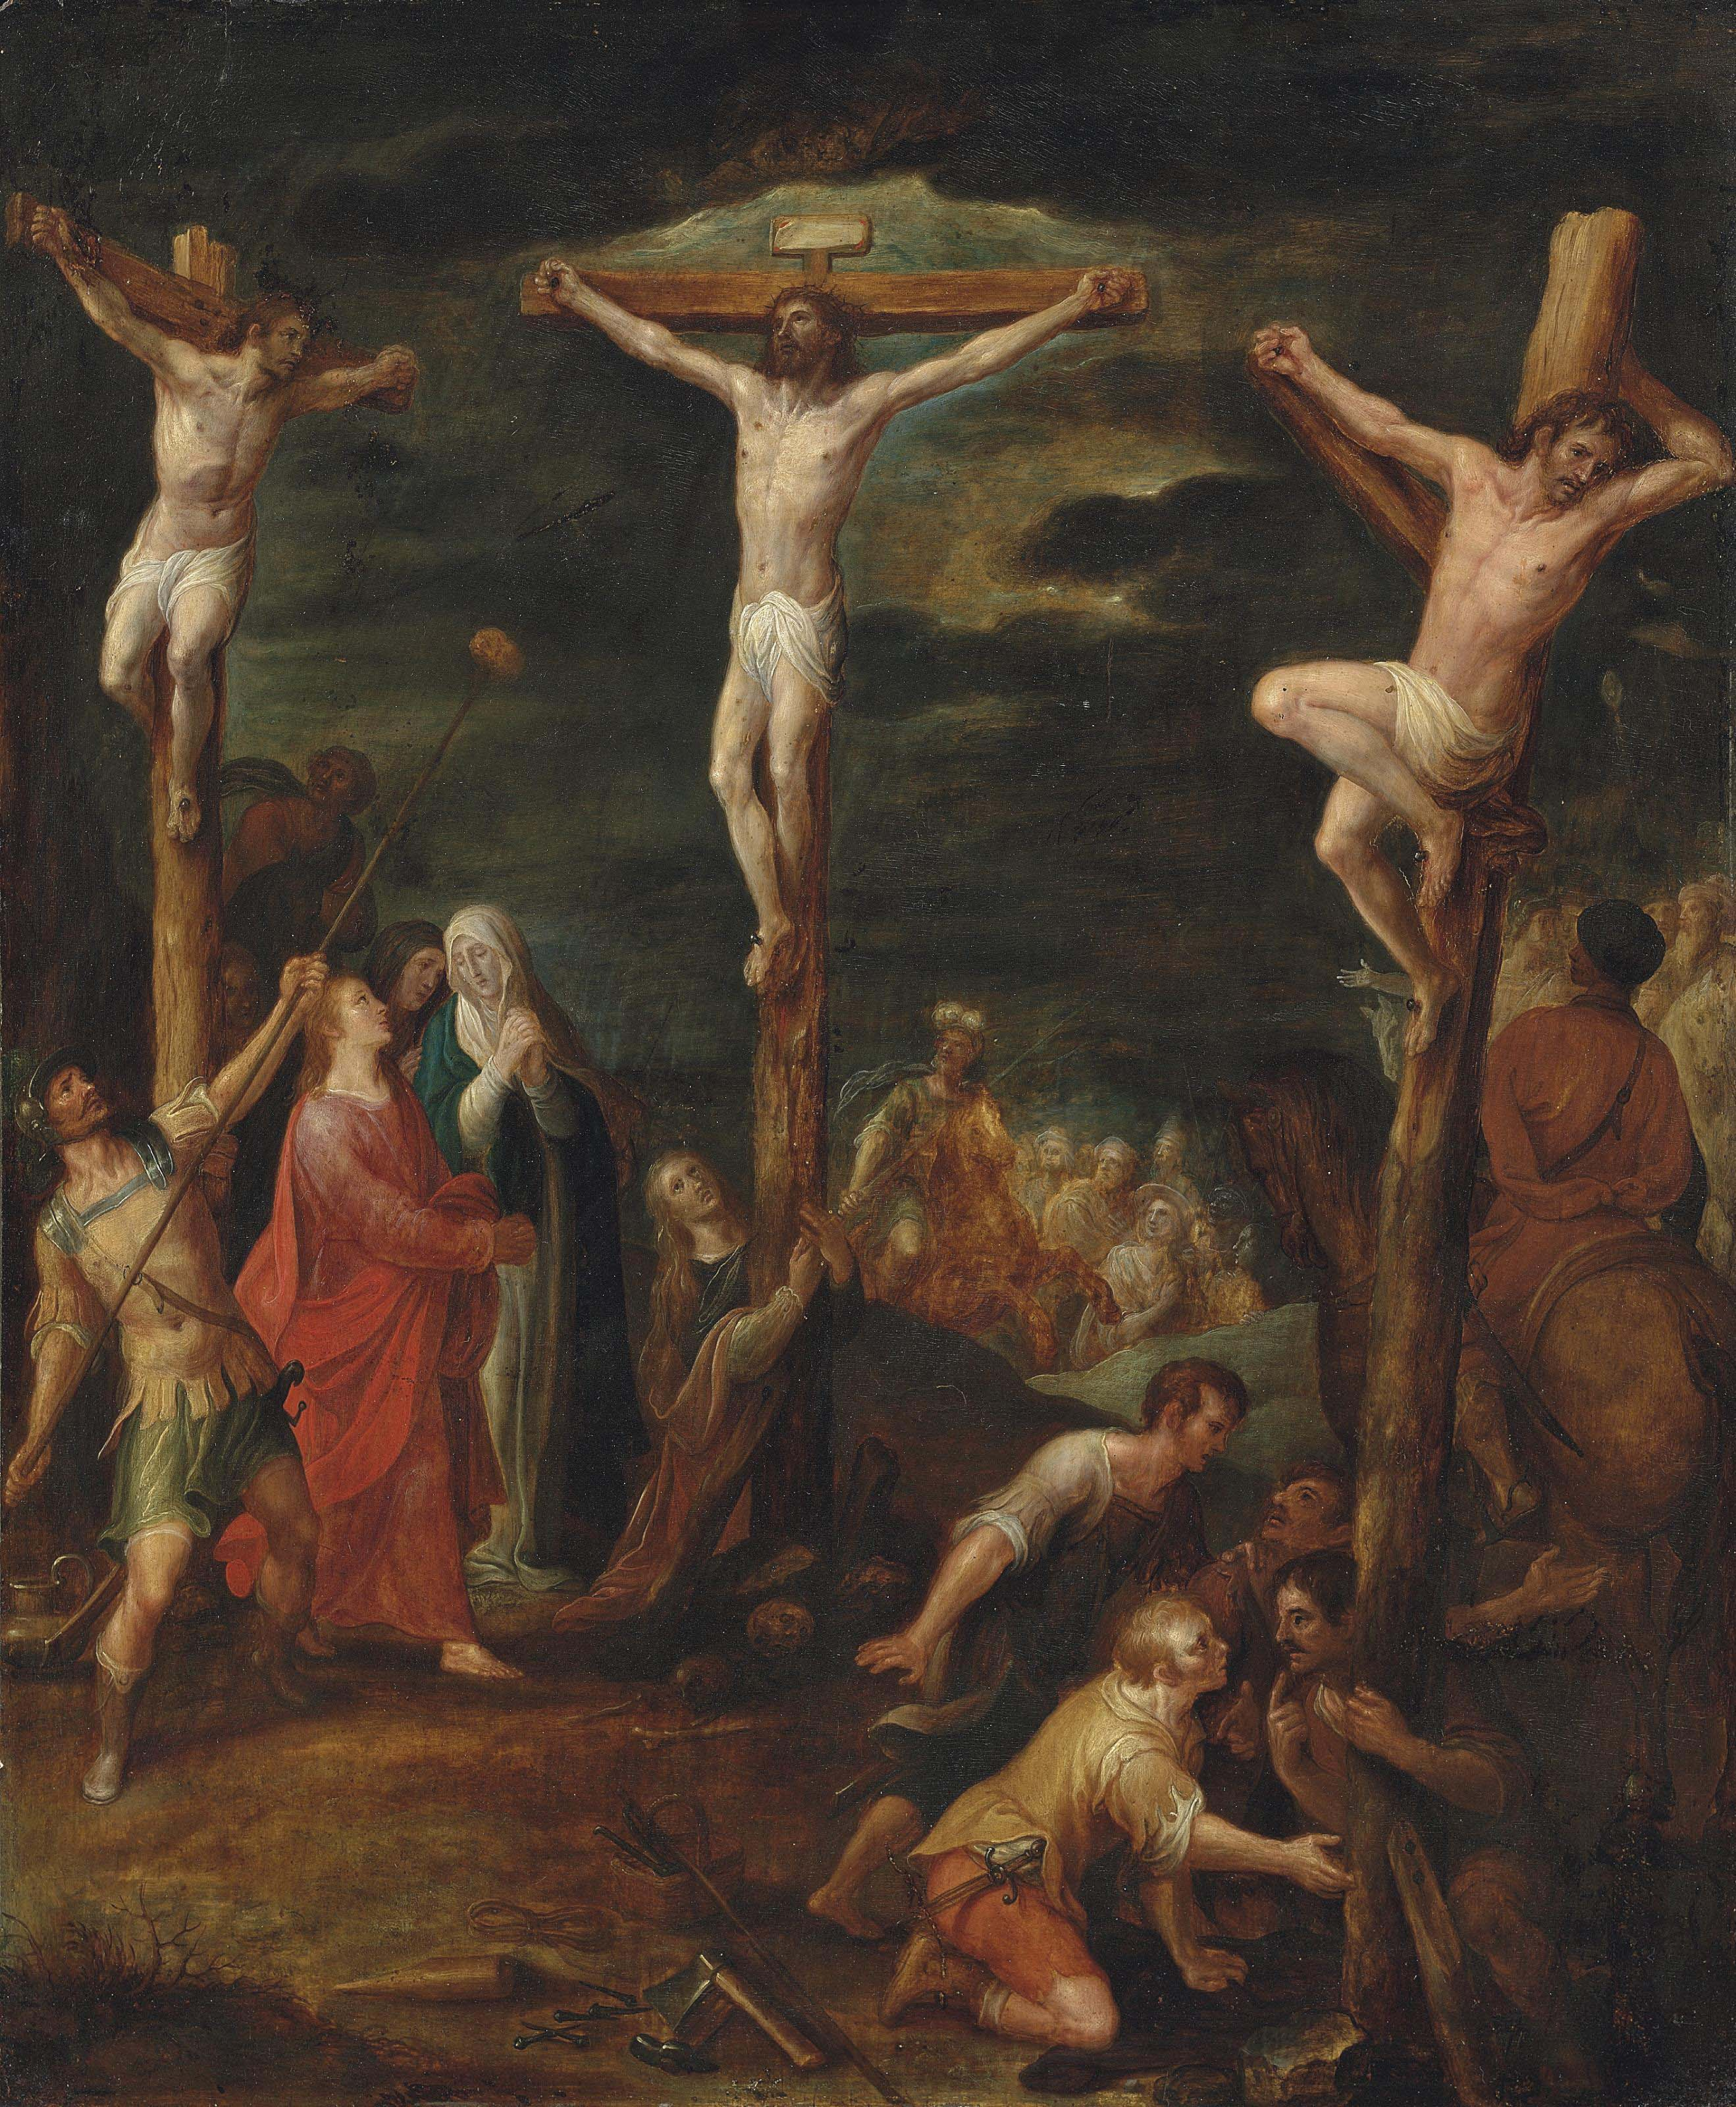 The Crucifixion with the two thieves